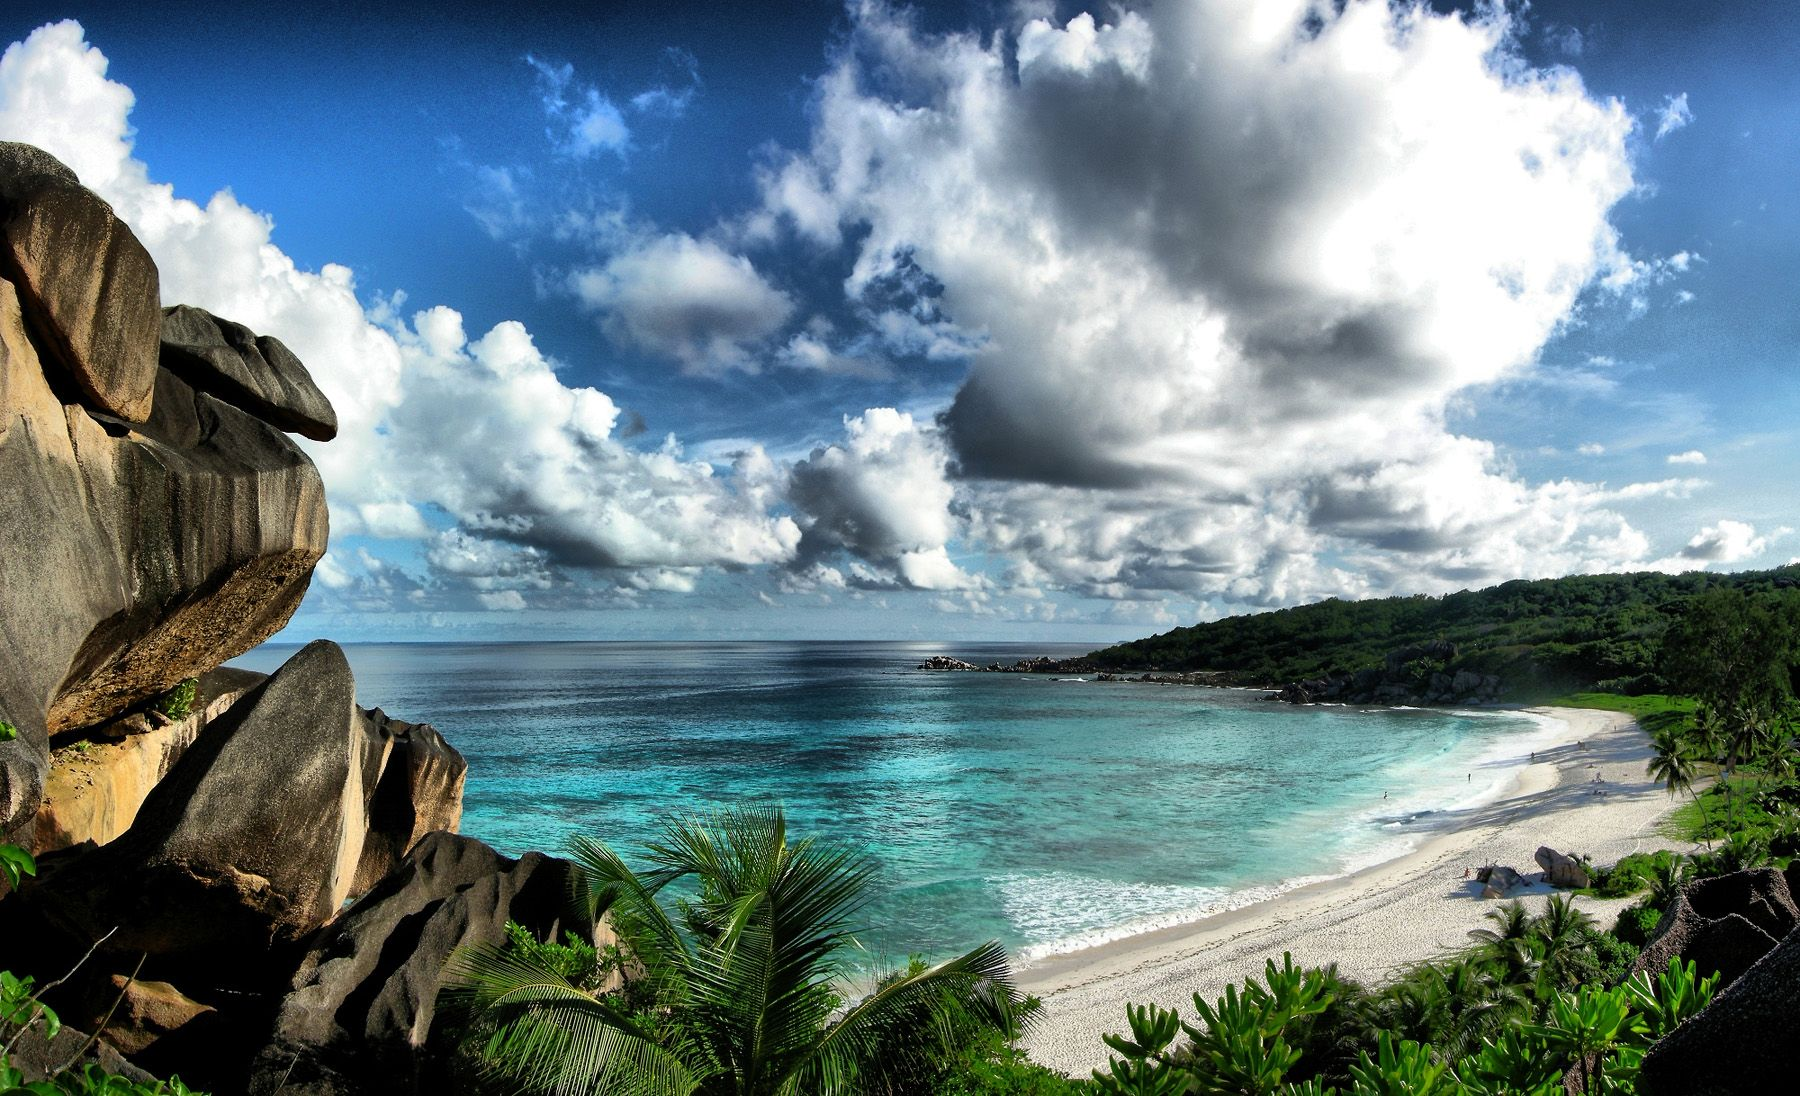 The Seychelles Islands are my dream vacation! Someday...